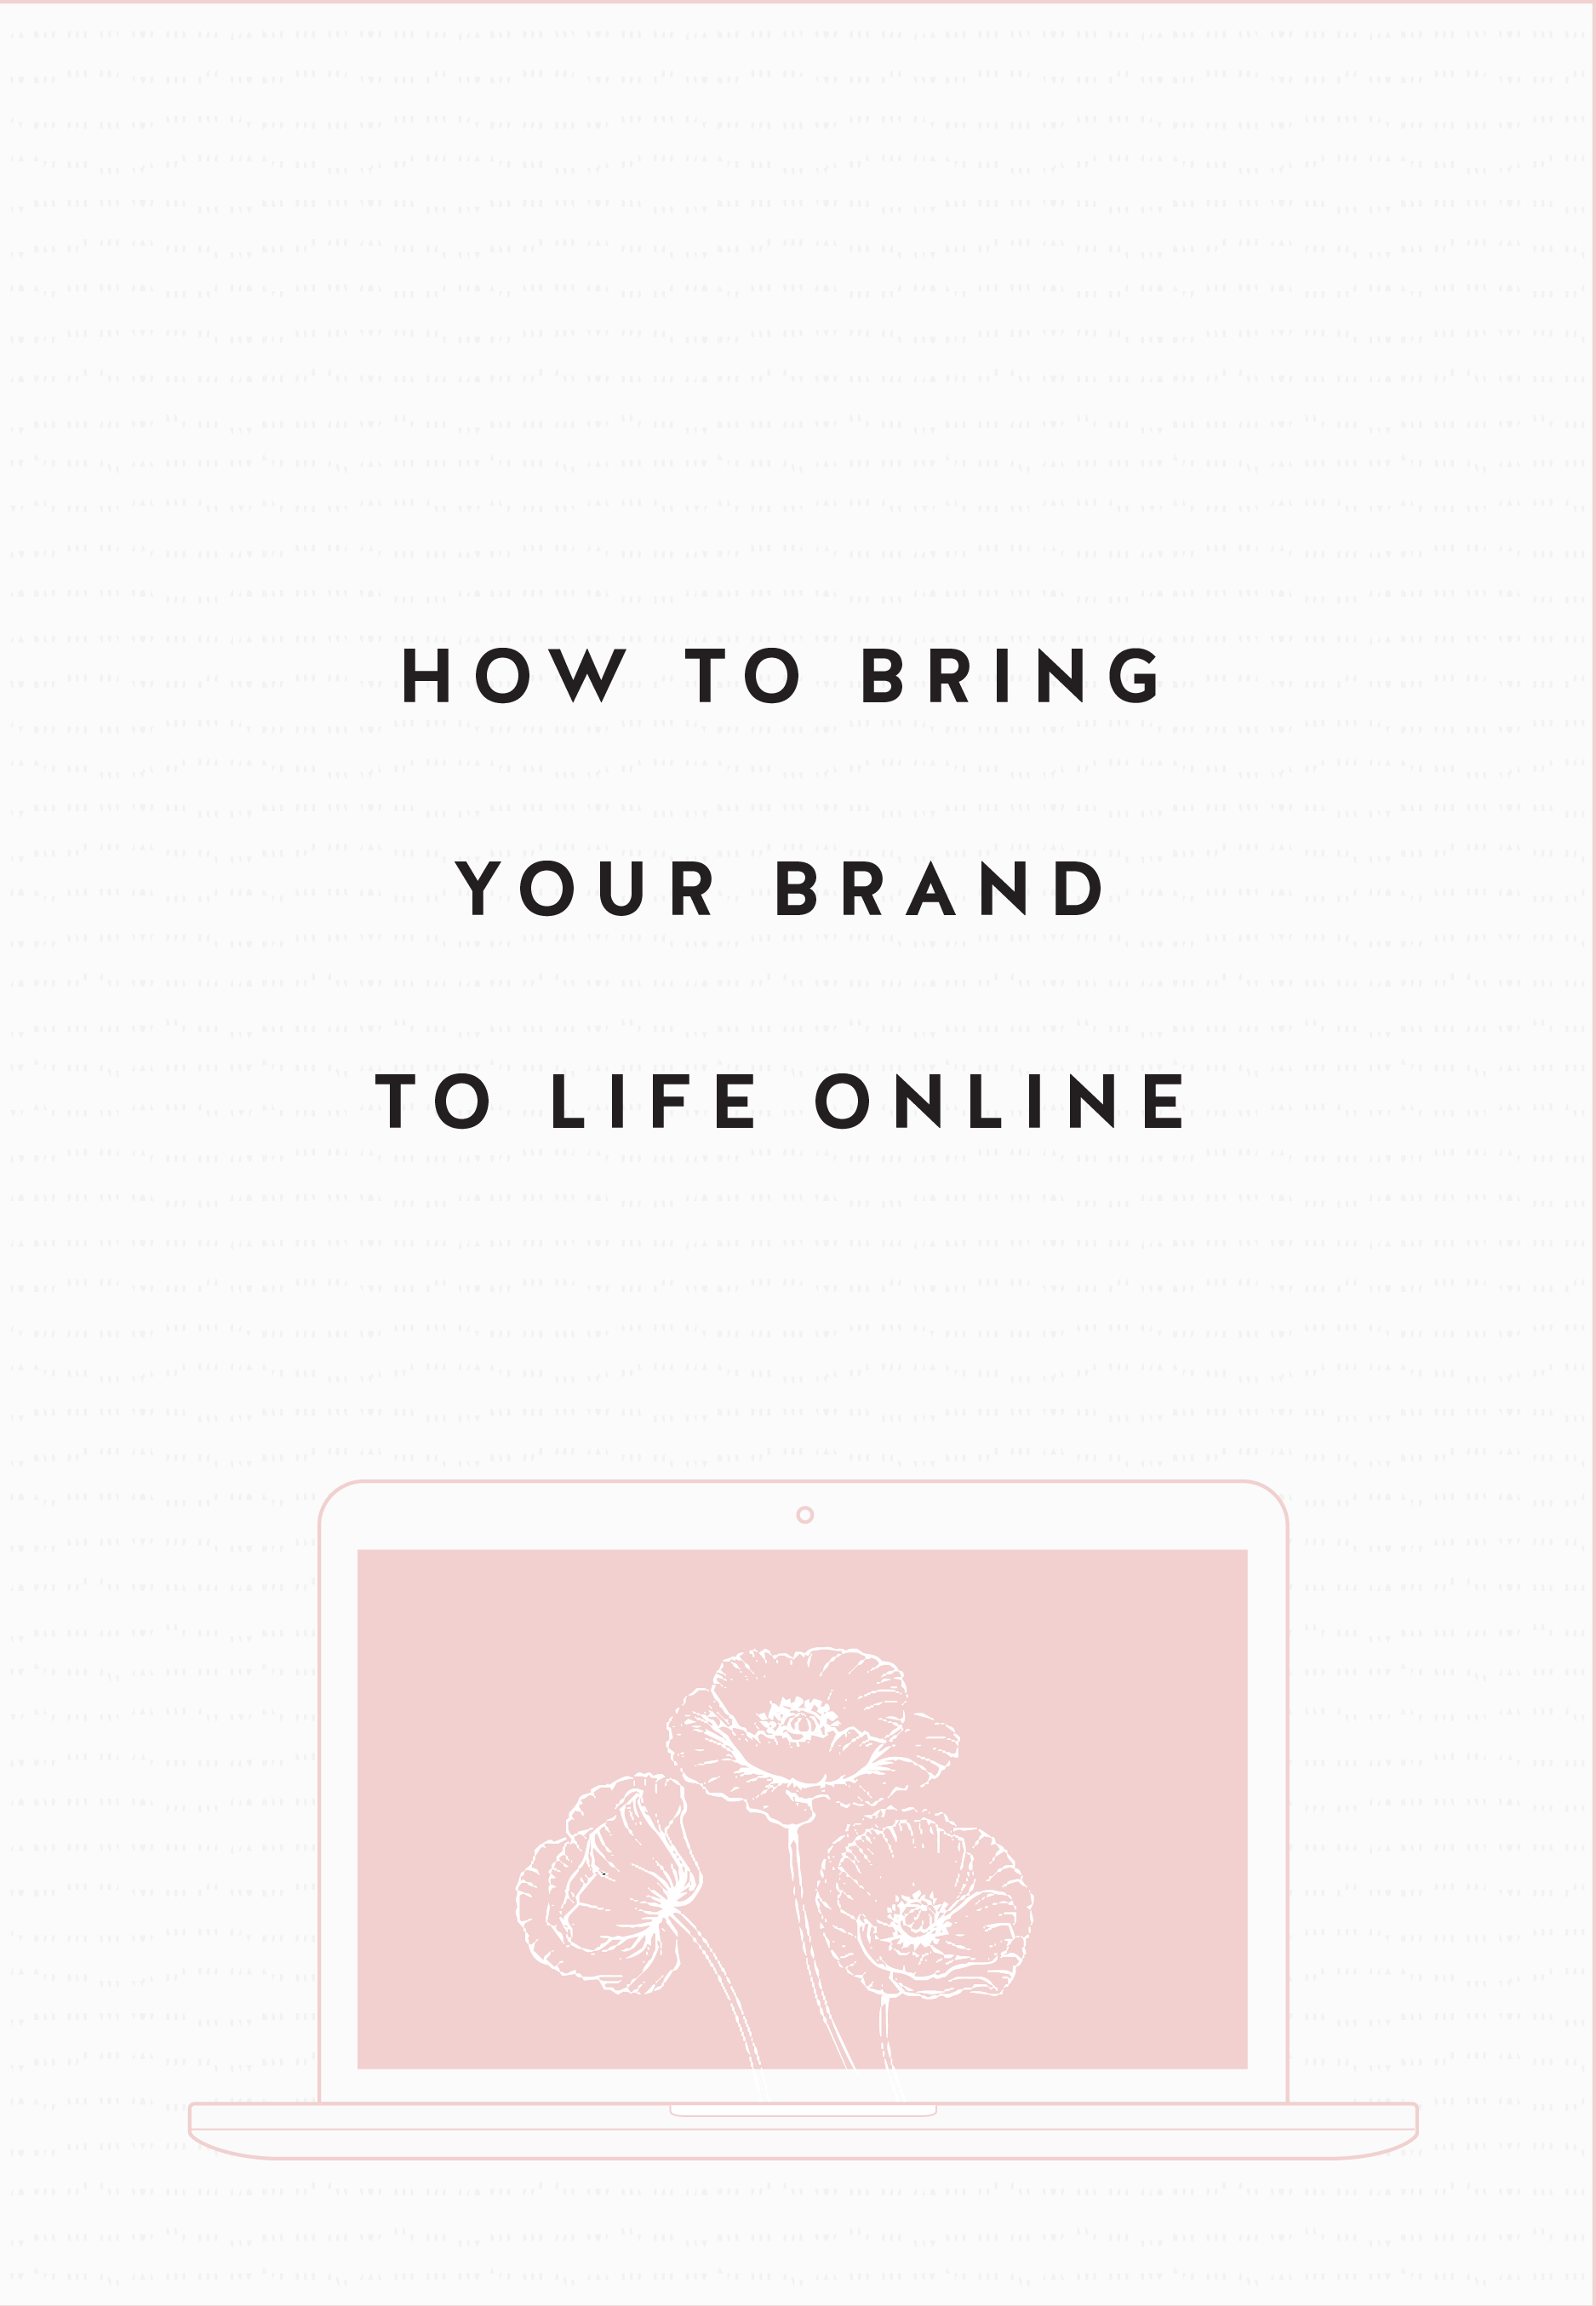 HOW-TO-BRING-YOUR-BRAND-TO-LIFE-ONLINE-01.png